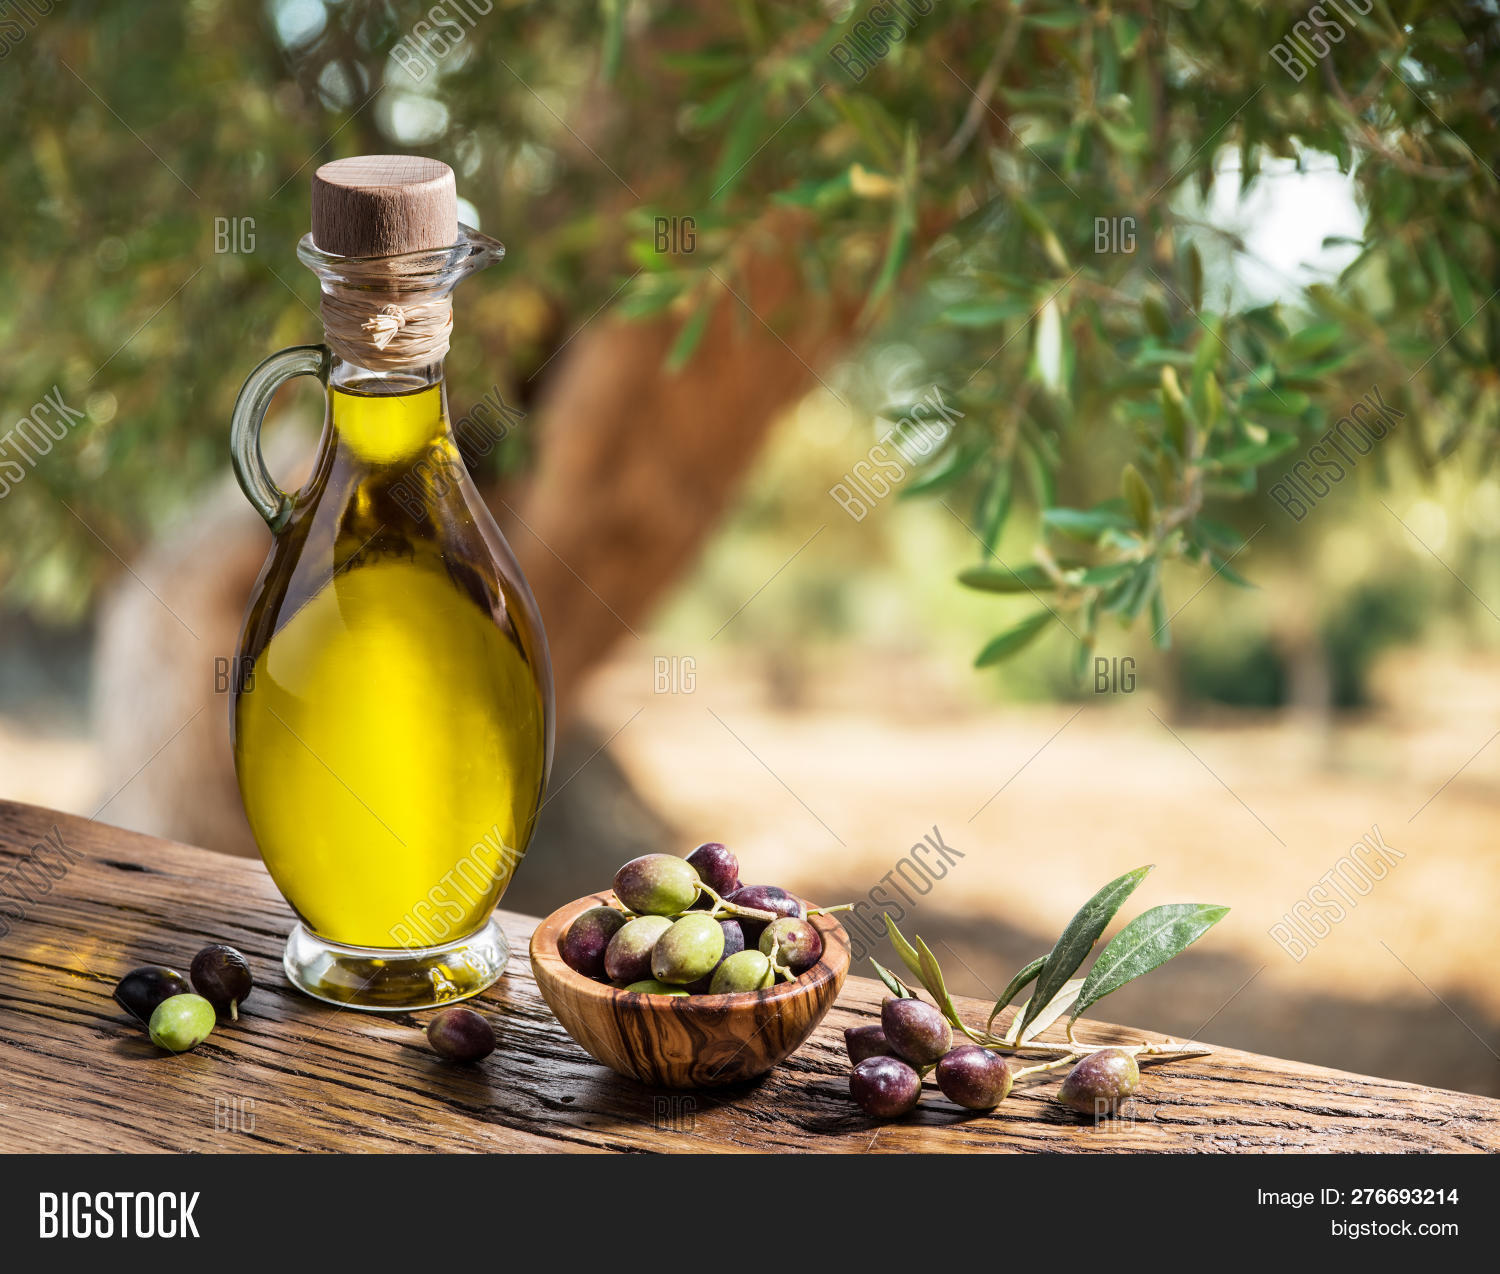 Olive Oil On Wooden Table